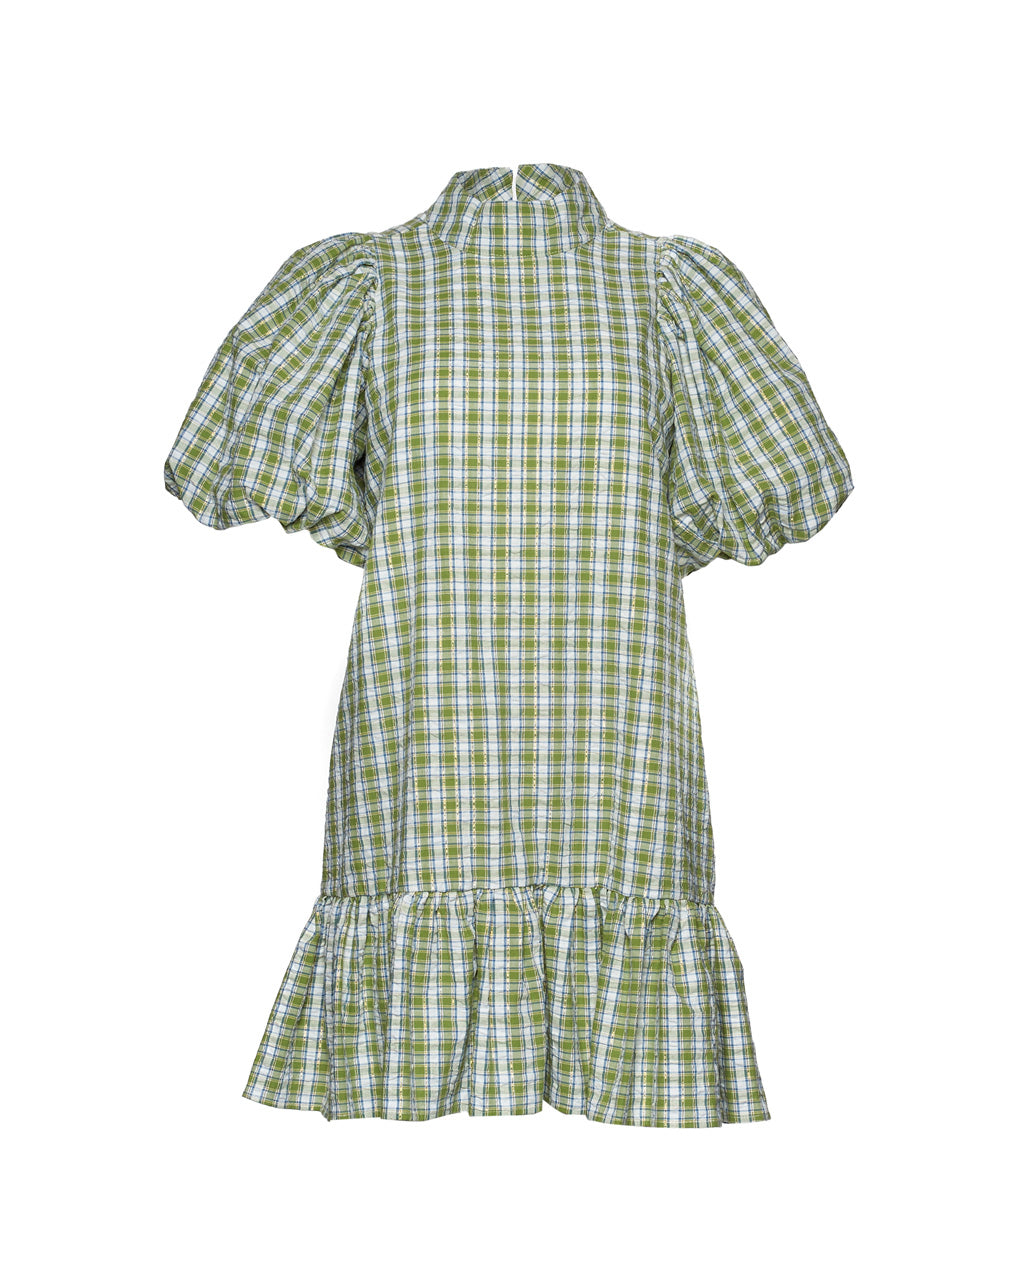 mini dress with puff sleeves and mock neck collar and tiered skirt in green check print